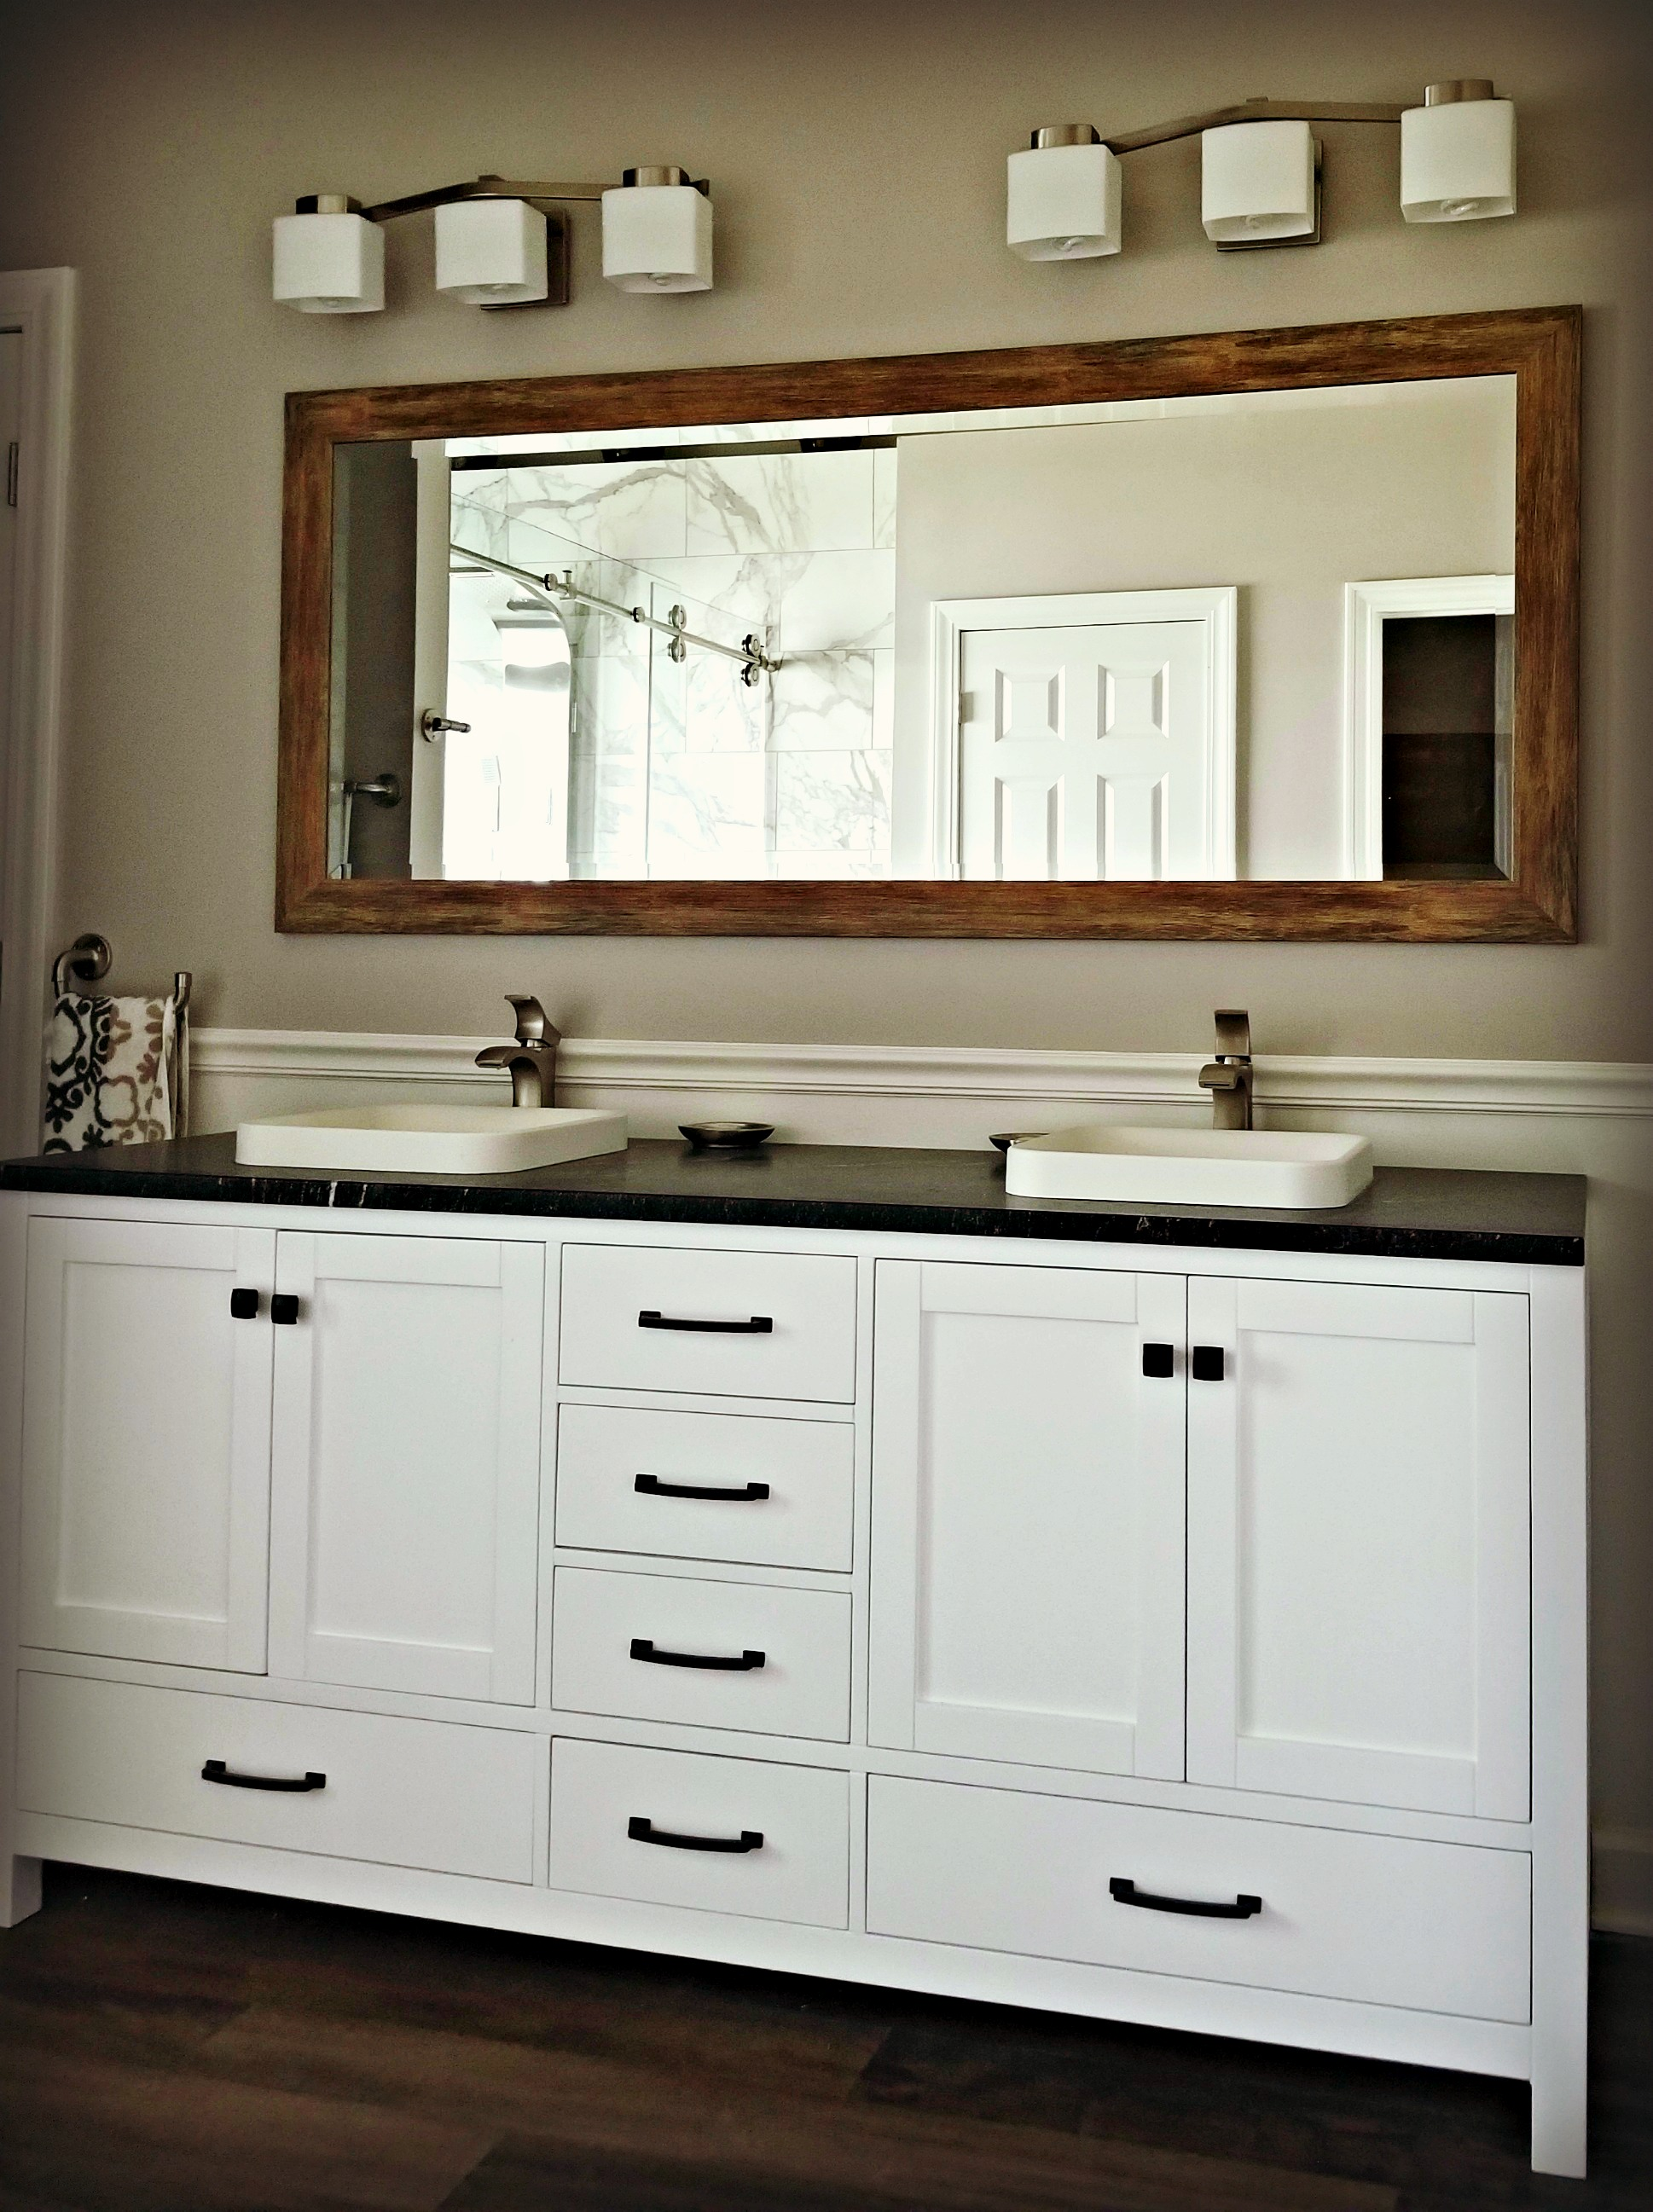 - Double vanity and sinksBrushed nickel hardwareDark granite countertop